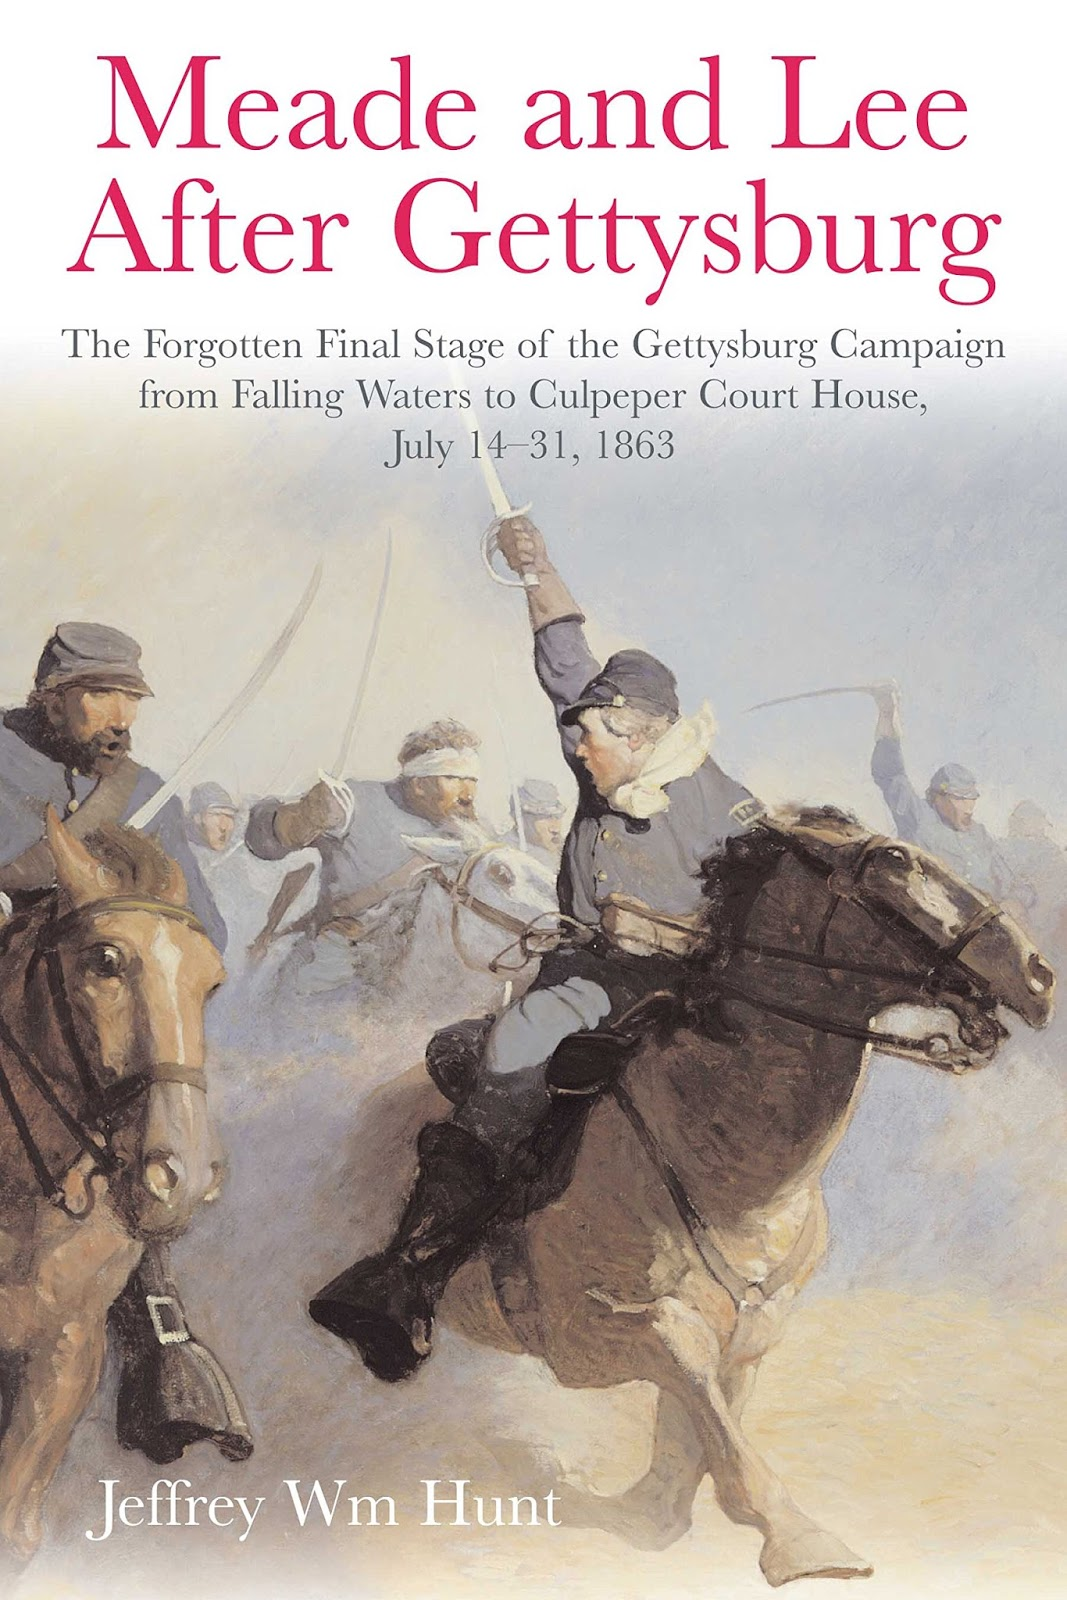 The Fighting In The Eastern Theater Between The End Of The Battle Of  Gettysburg And The Beginning Of The 1864 Overland Campaign Has Received  Increased